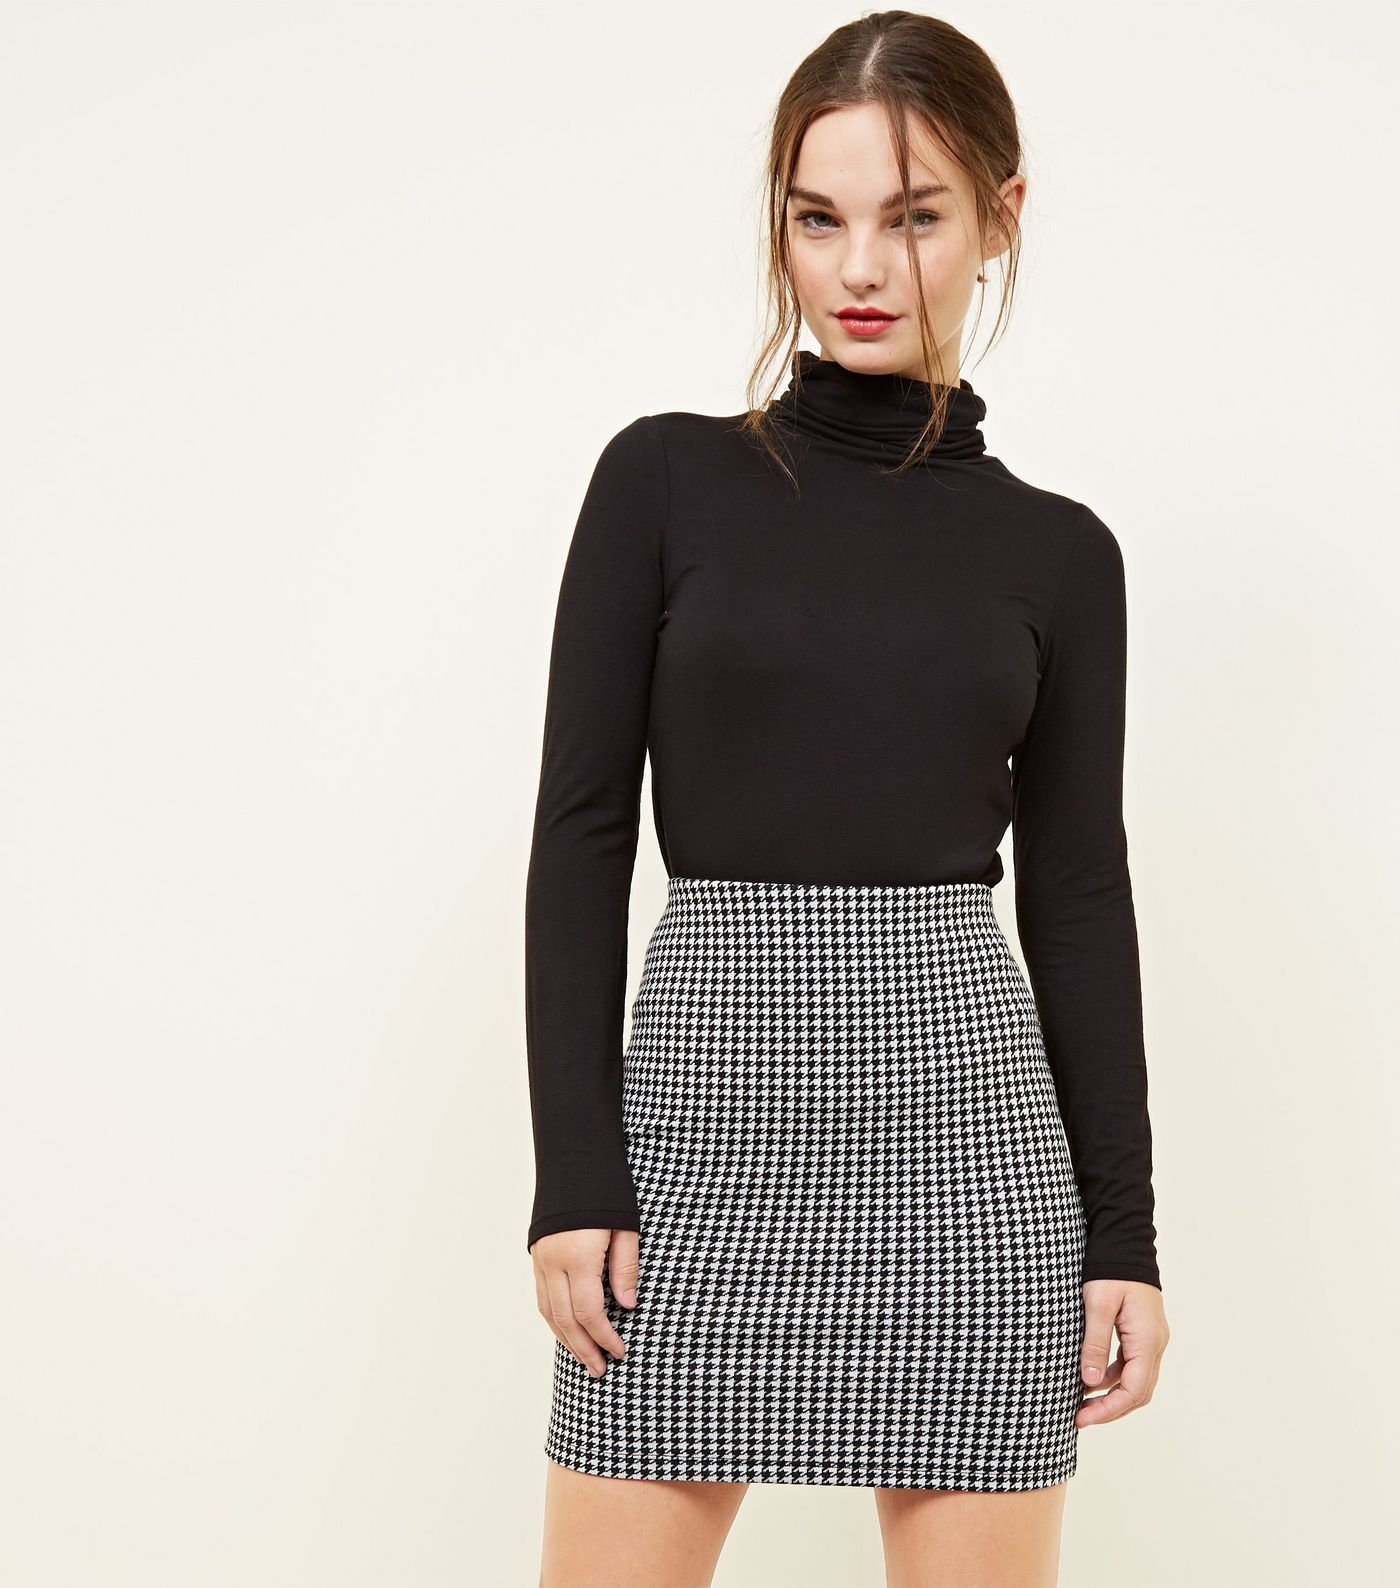 0bbe4bff2d54 Petite Black Houndstooth Tube Skirt in 2019 | what to wear ...